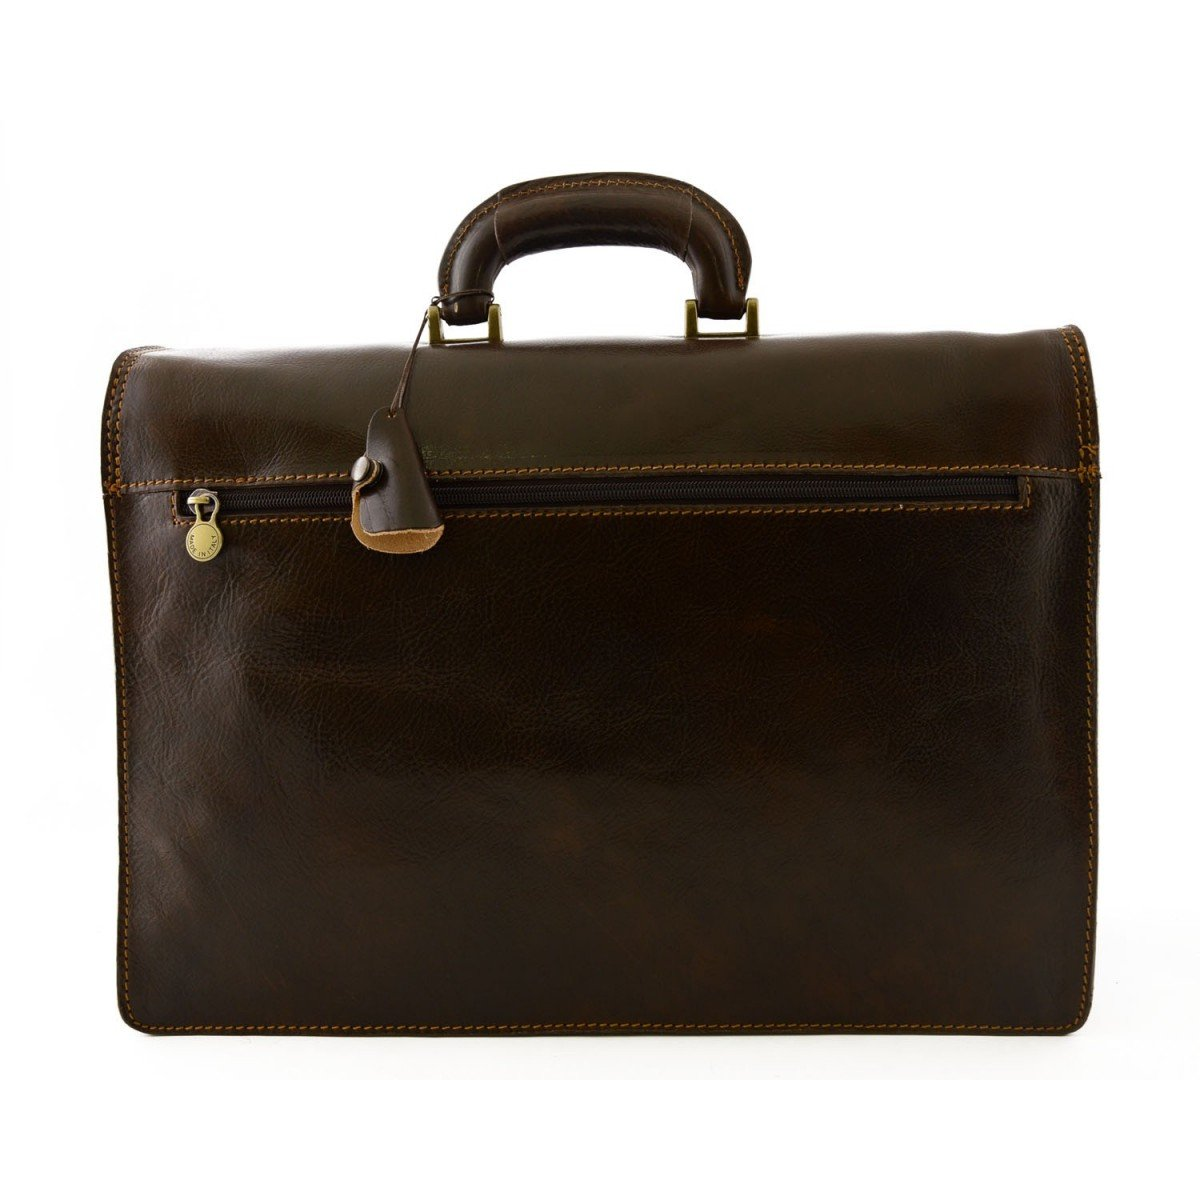 Genuine Leather Professional Briefcase 3 Compartments Color Dark Brown